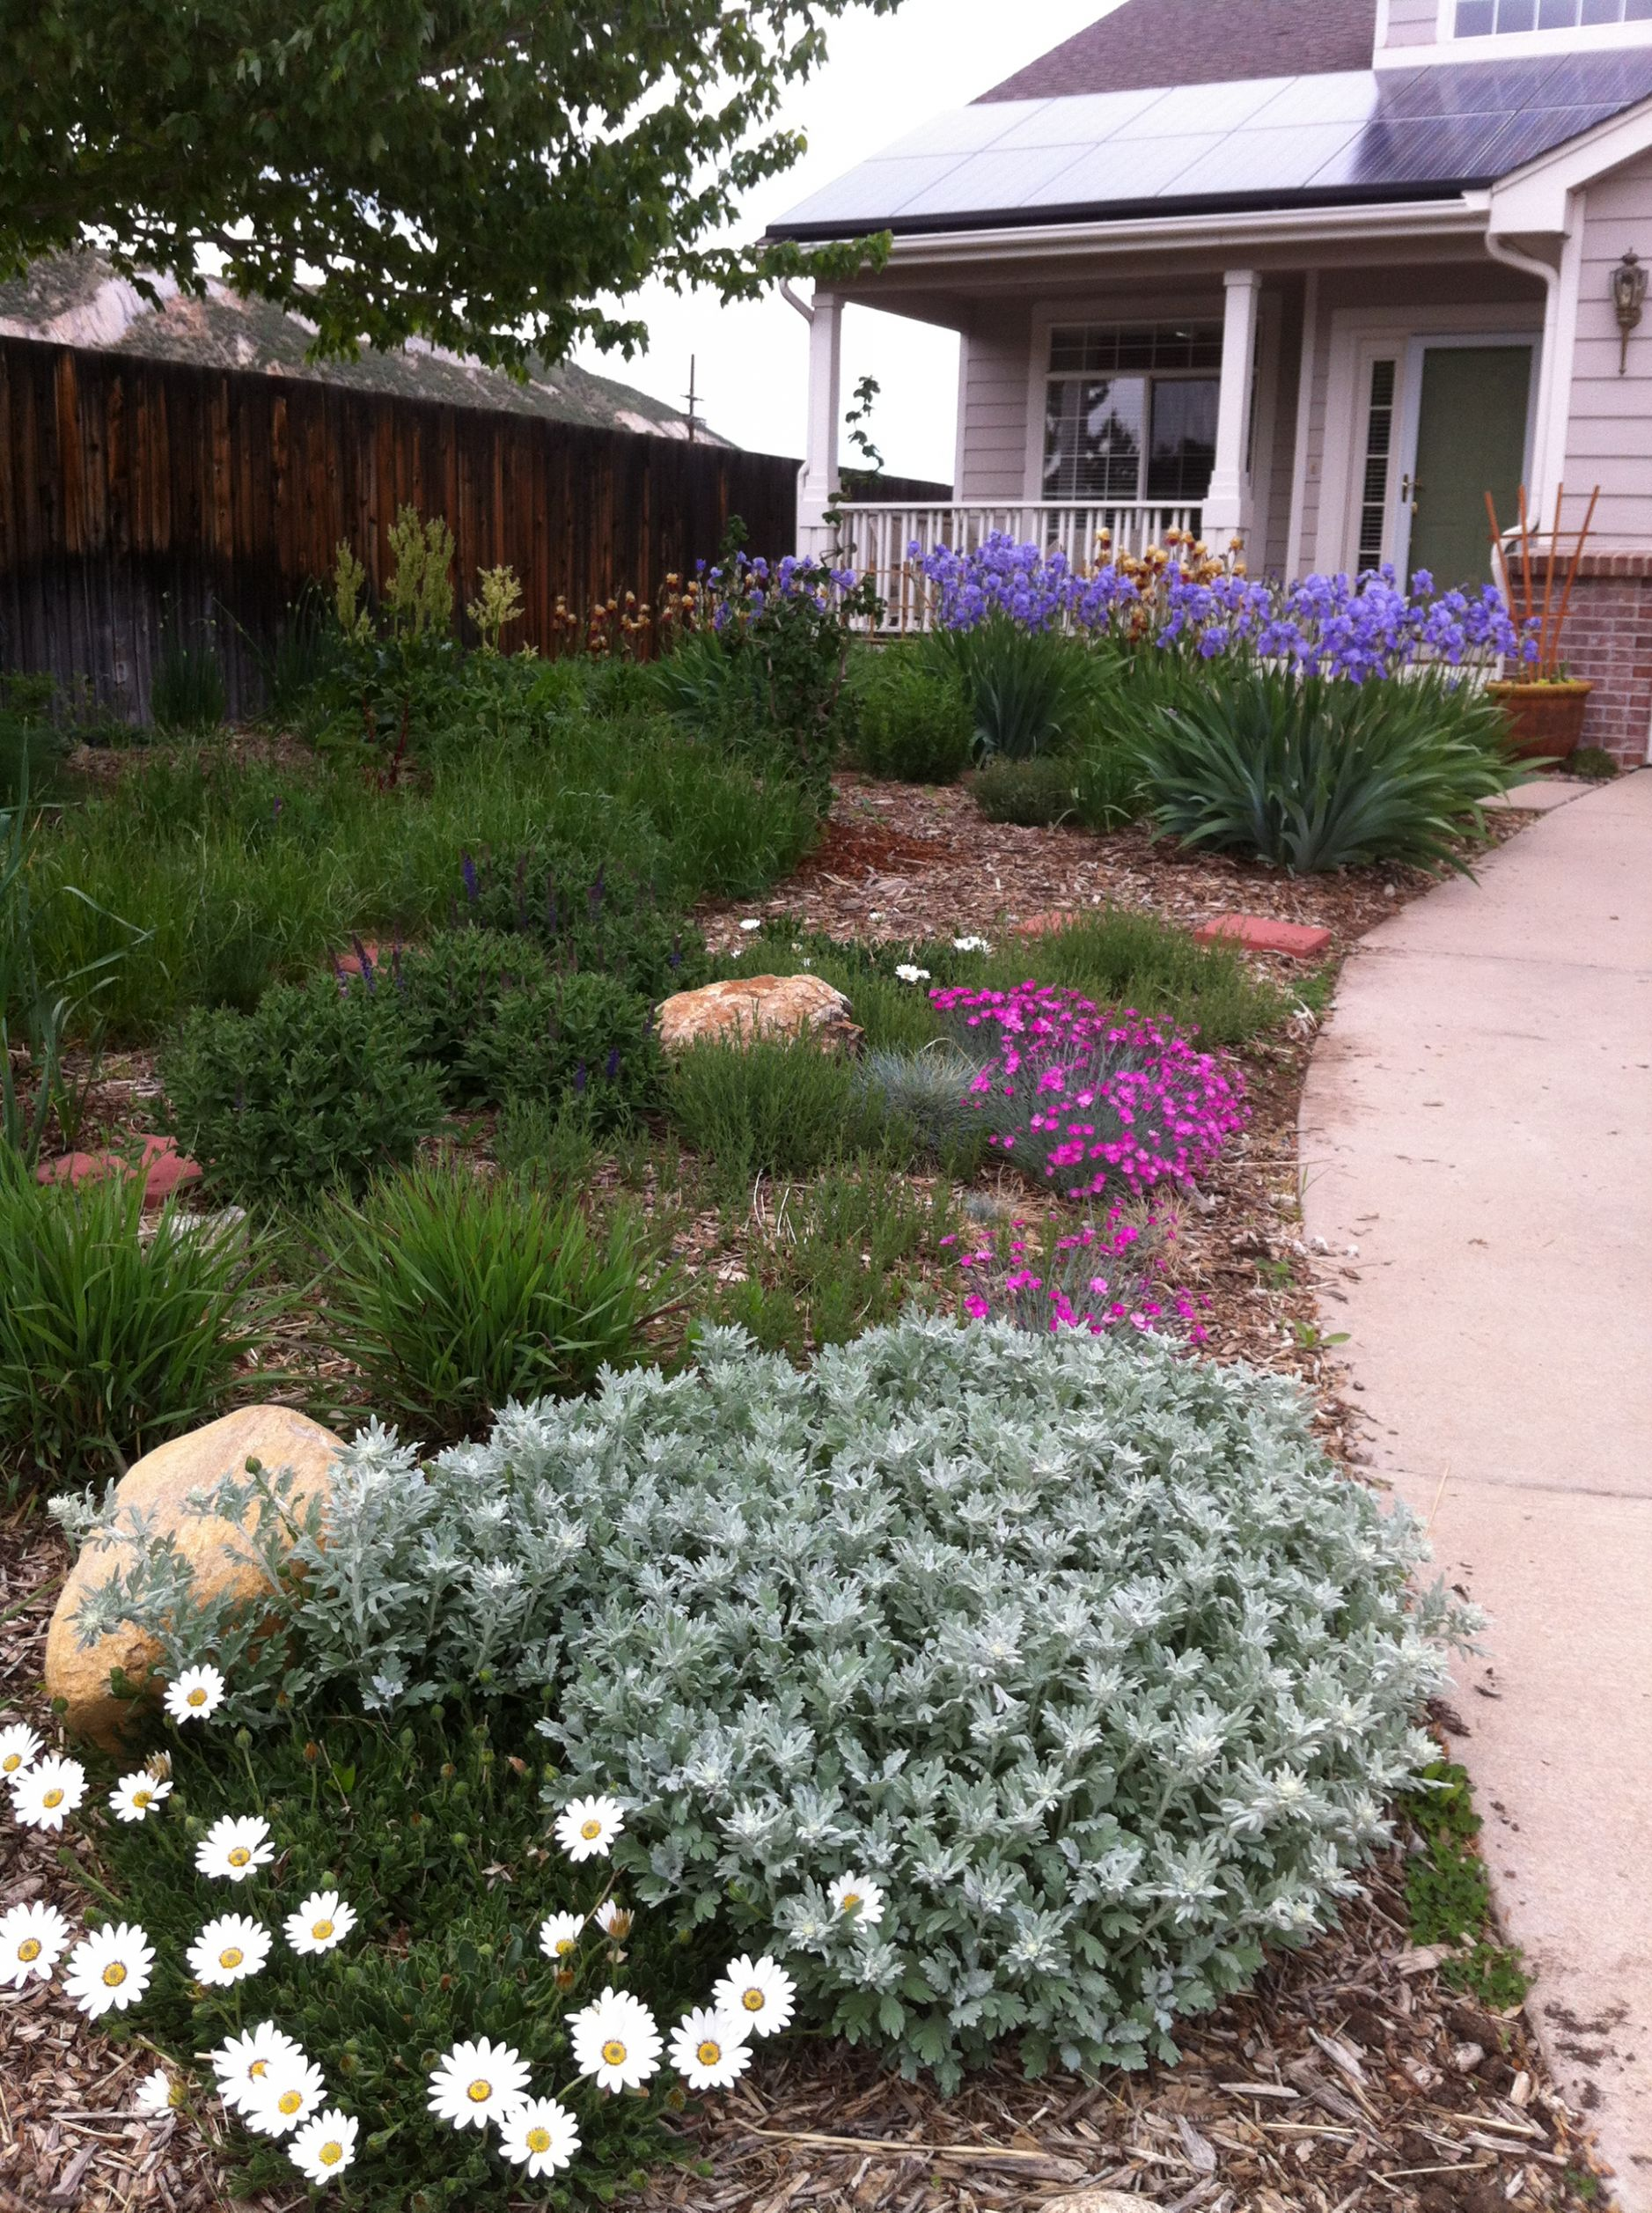 Tips and tricks for planning and designing your own xeric garden ..